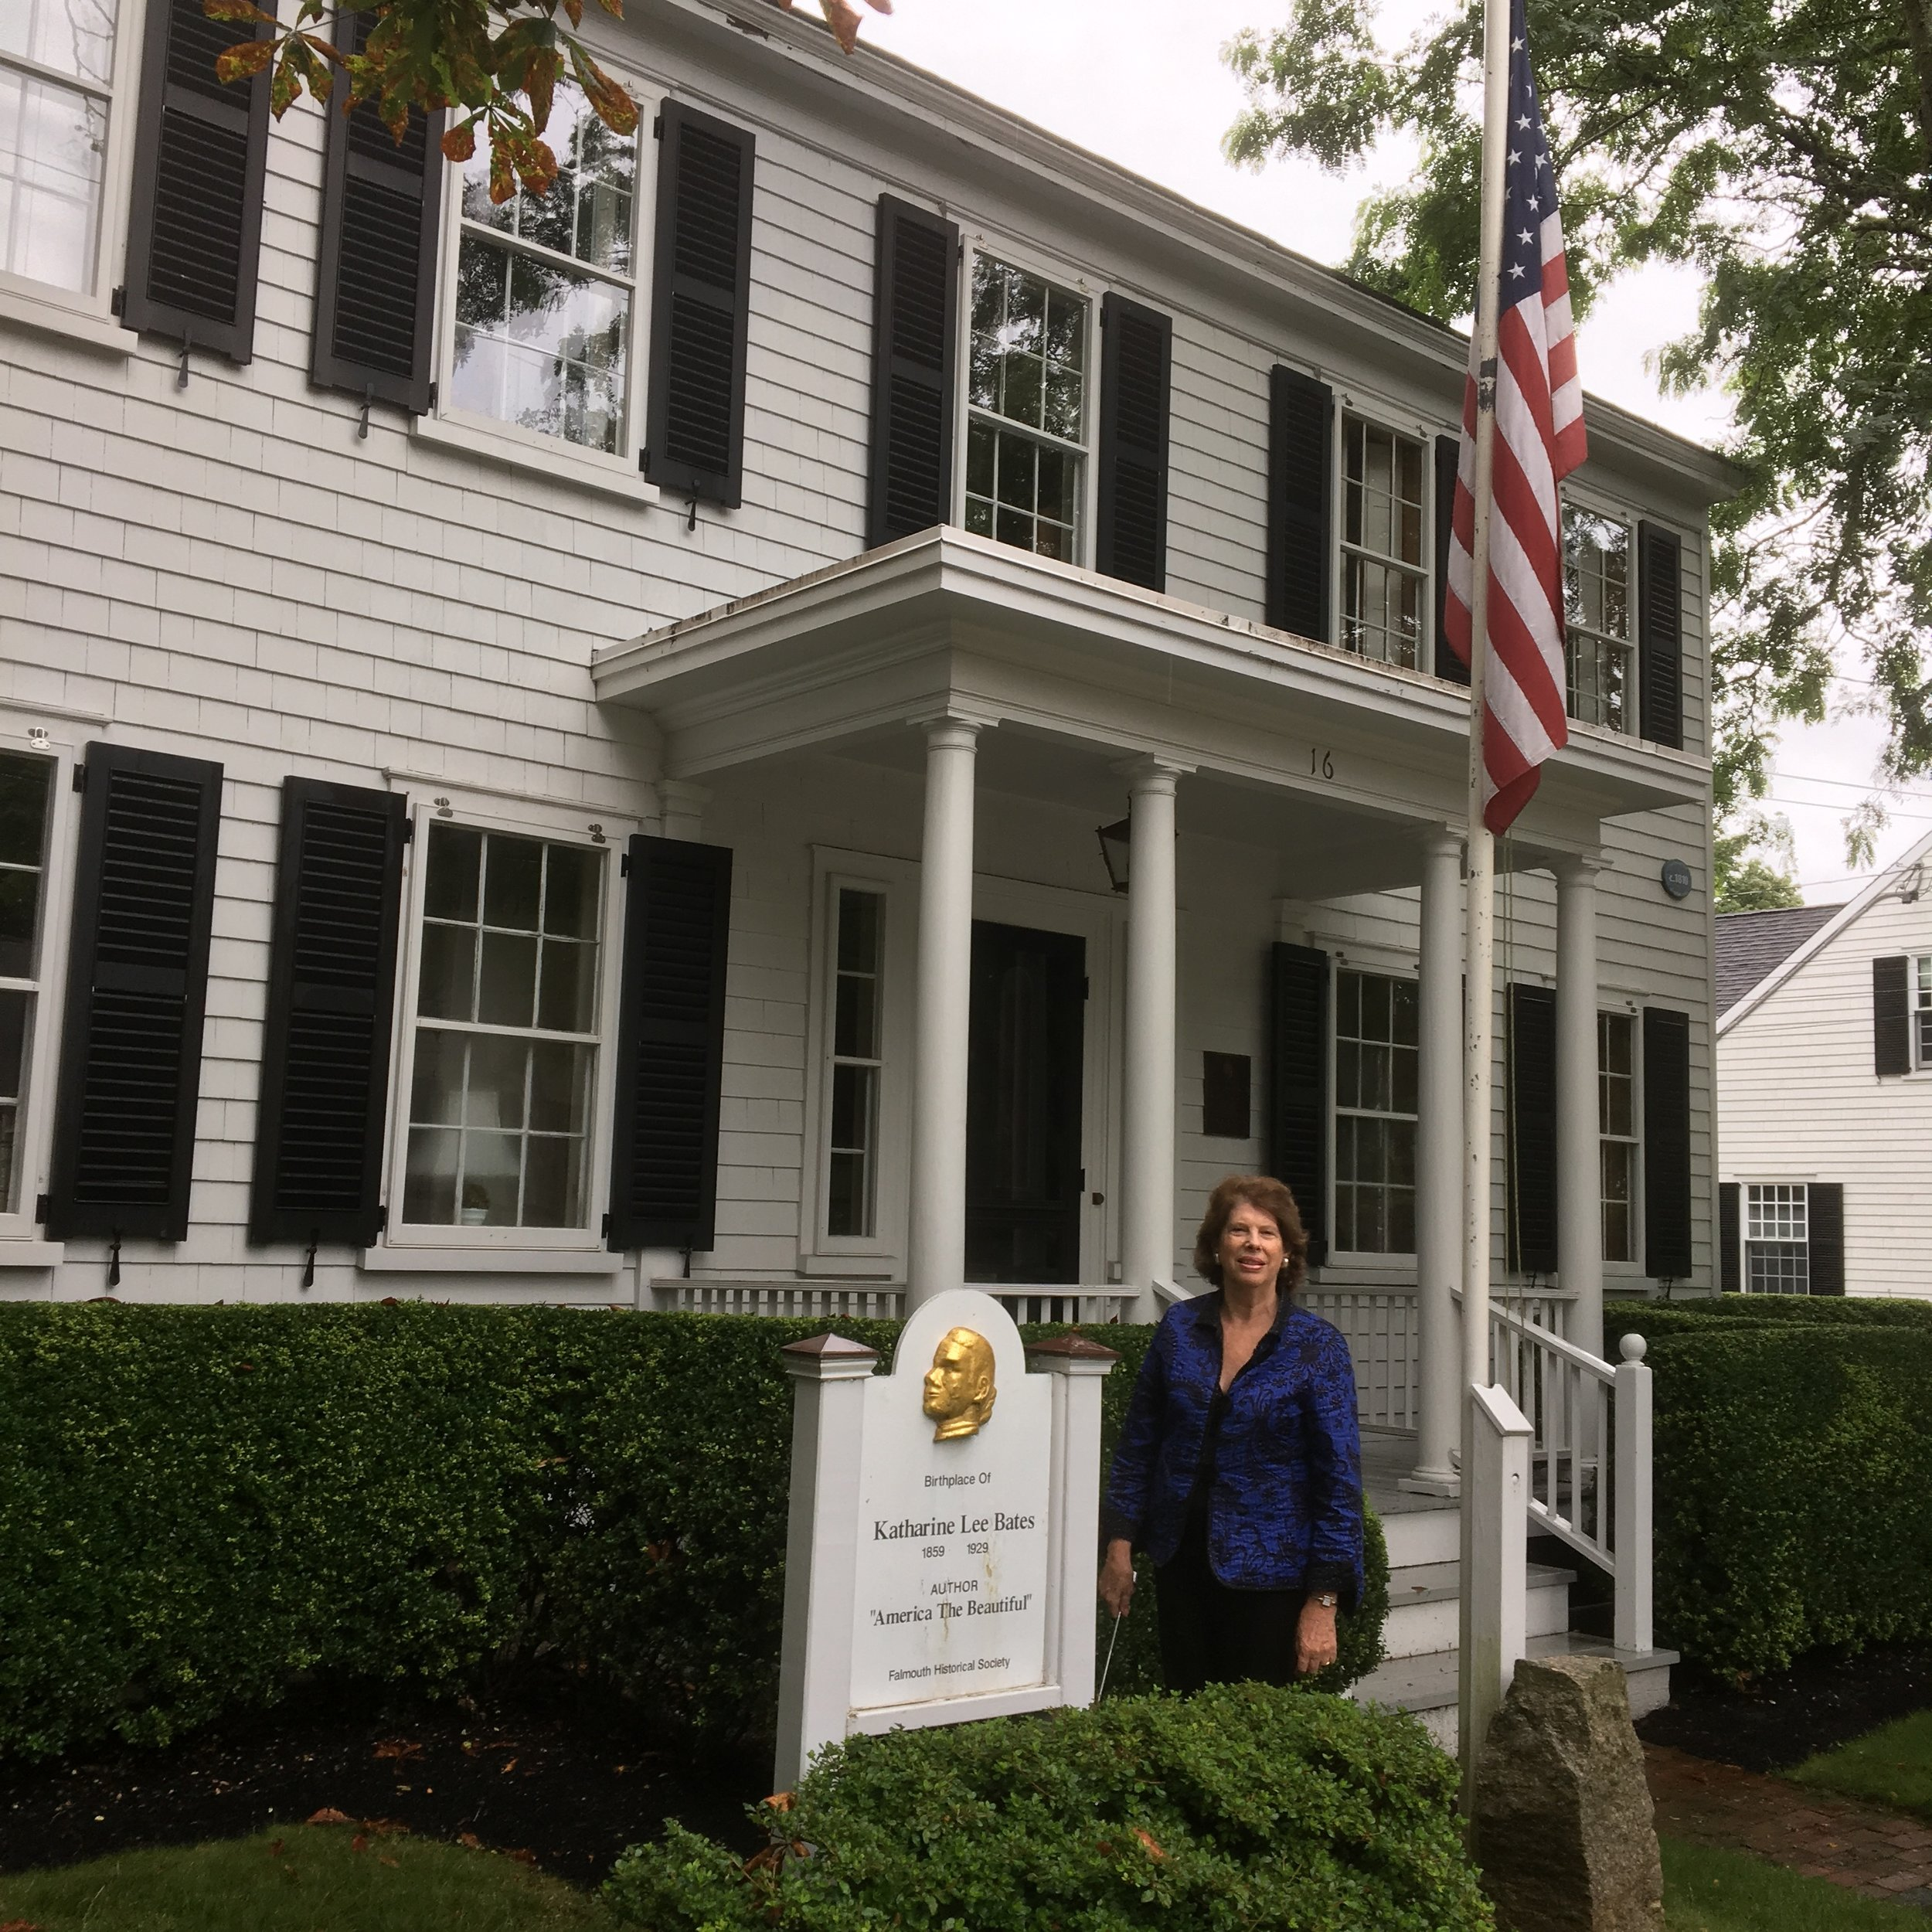 Melinda M. Ponder at the house where Katharine Lee Bates was born and raised in Falmouth, Massachusetts